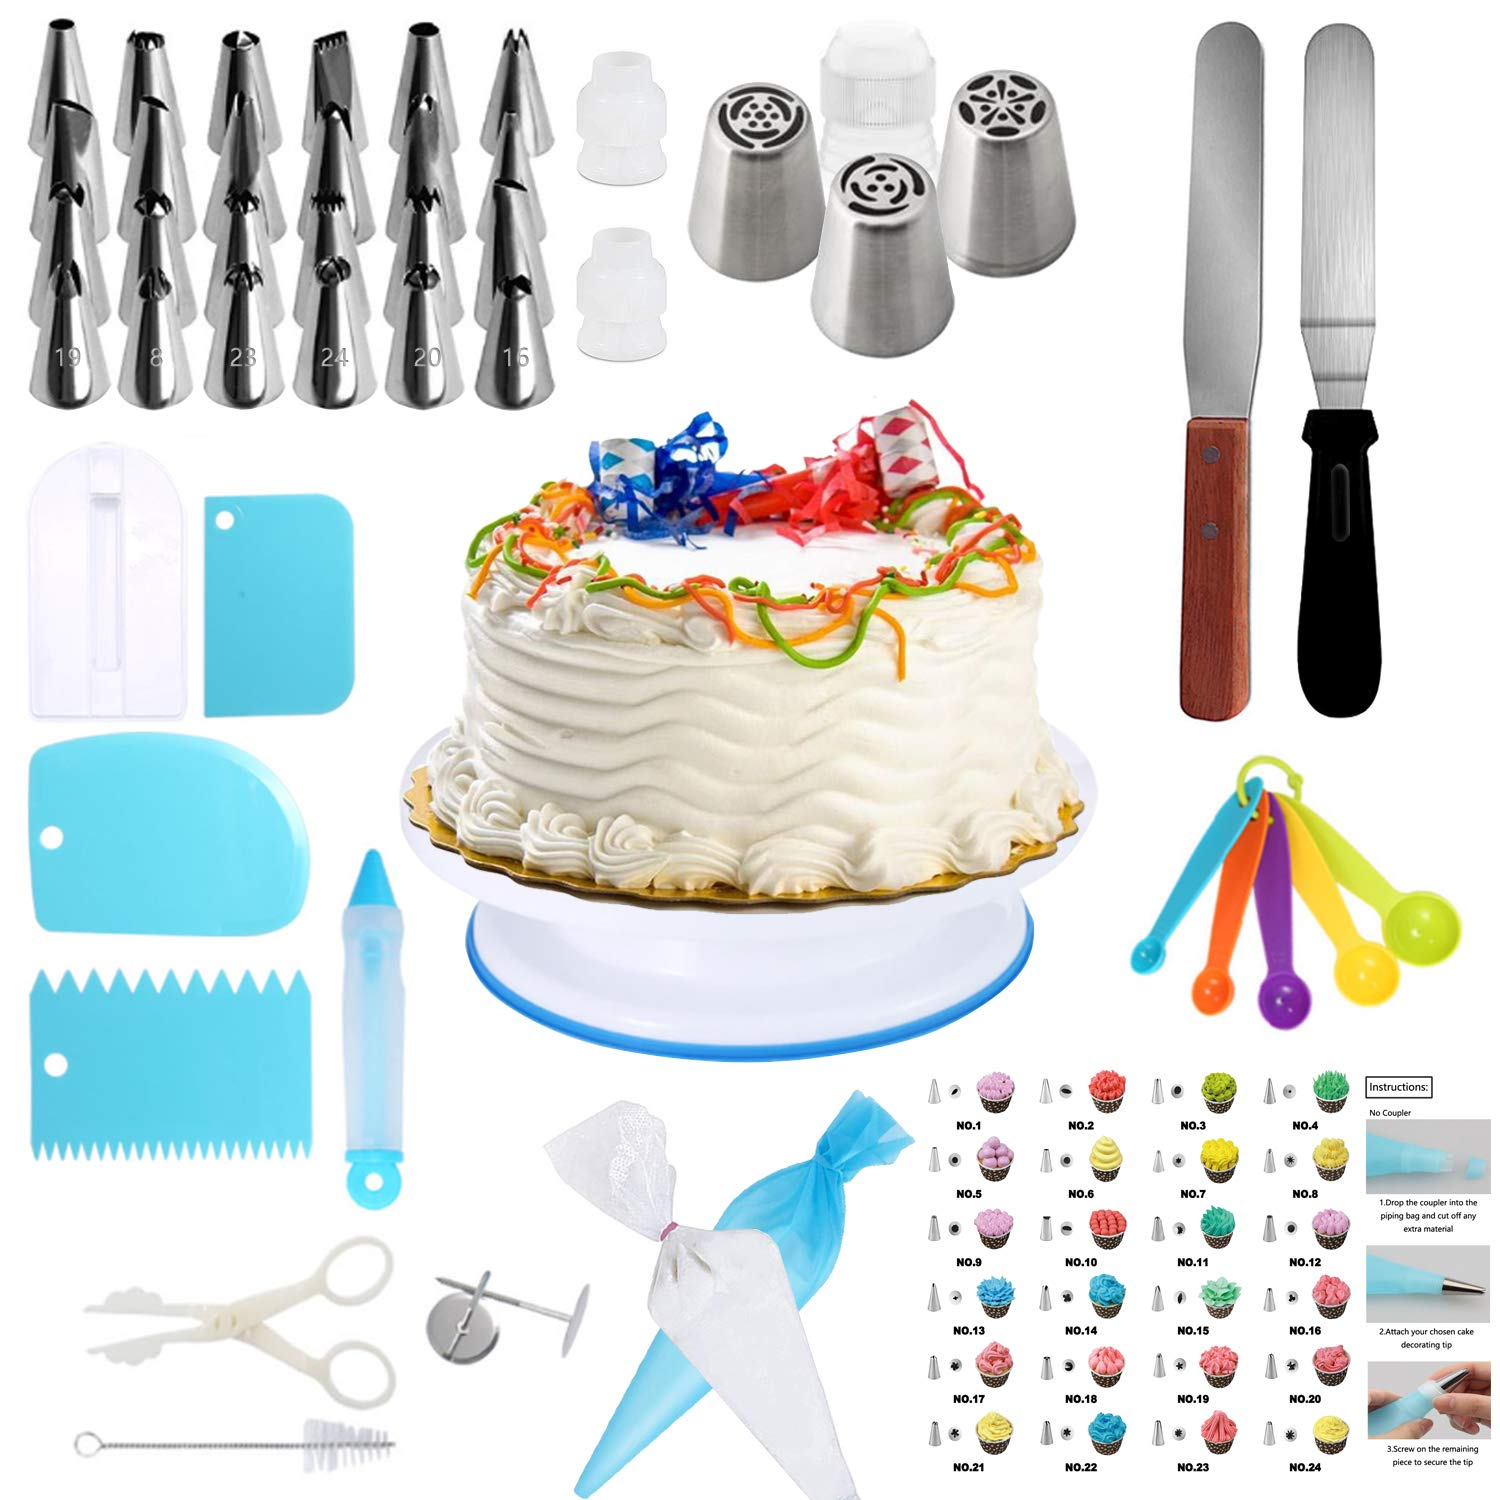 Cake Decorating Supplies Kit- 65 pcs Decorating Set With stands, piping tips, Pastry Bags,All-In-One Cake Decorating Set For Beginners & Professional by Nisam (Image #7)